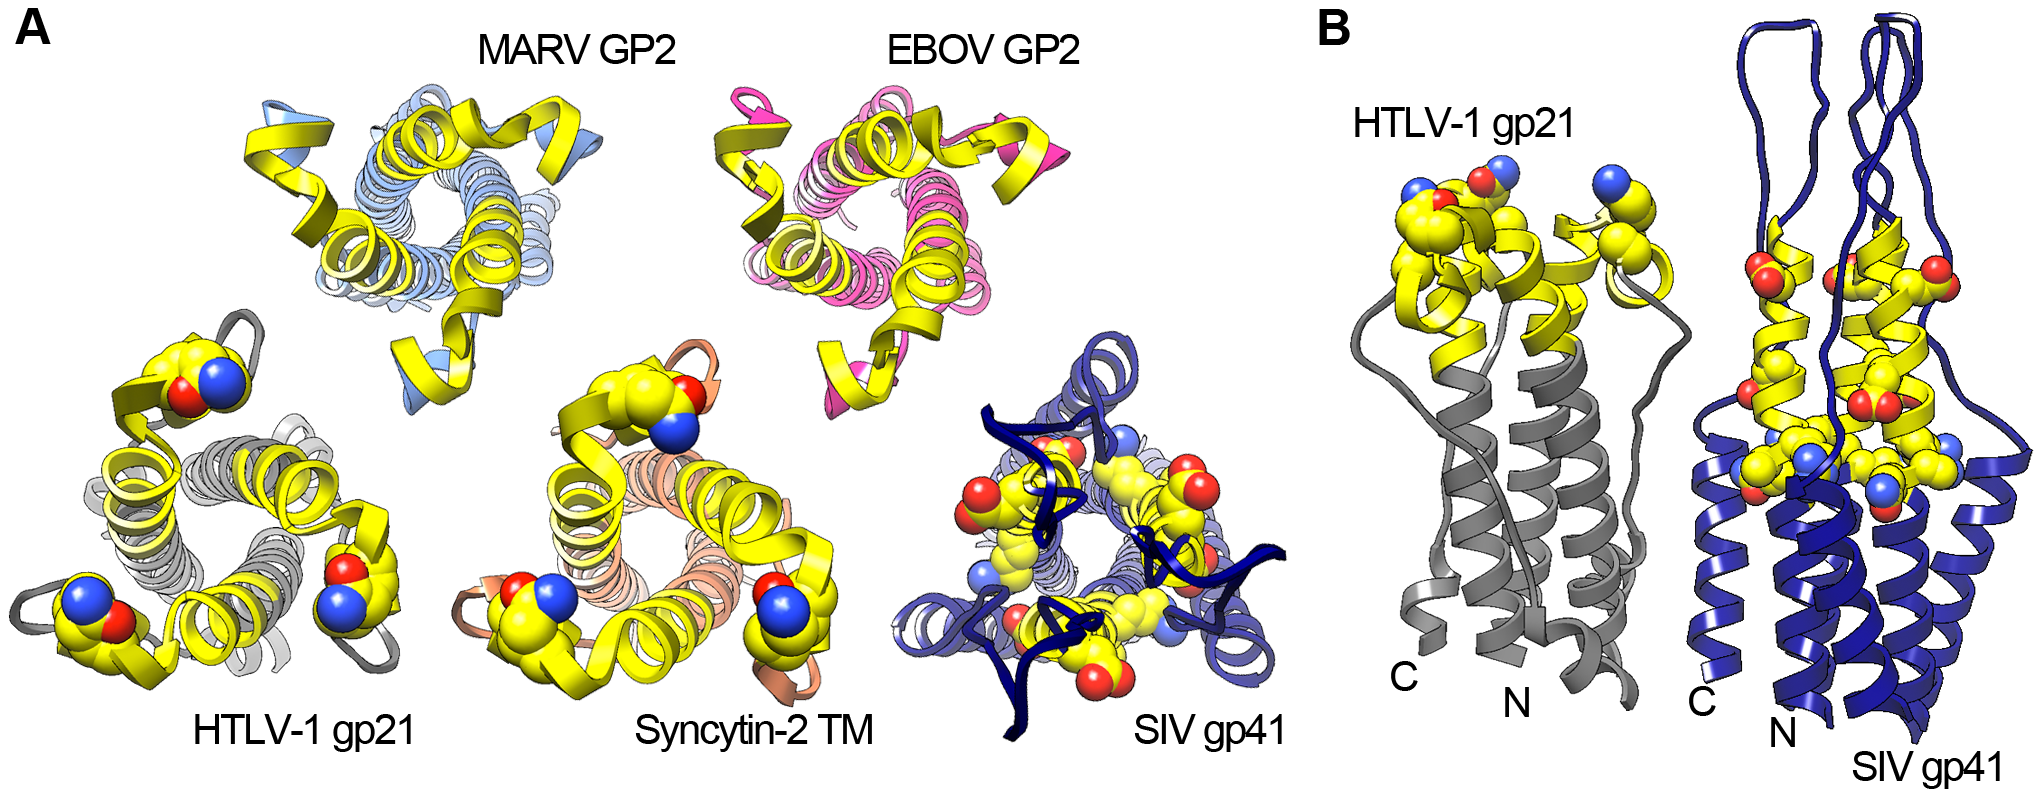 Structural conservation of the viral glycoprotein immunomodulatory region.